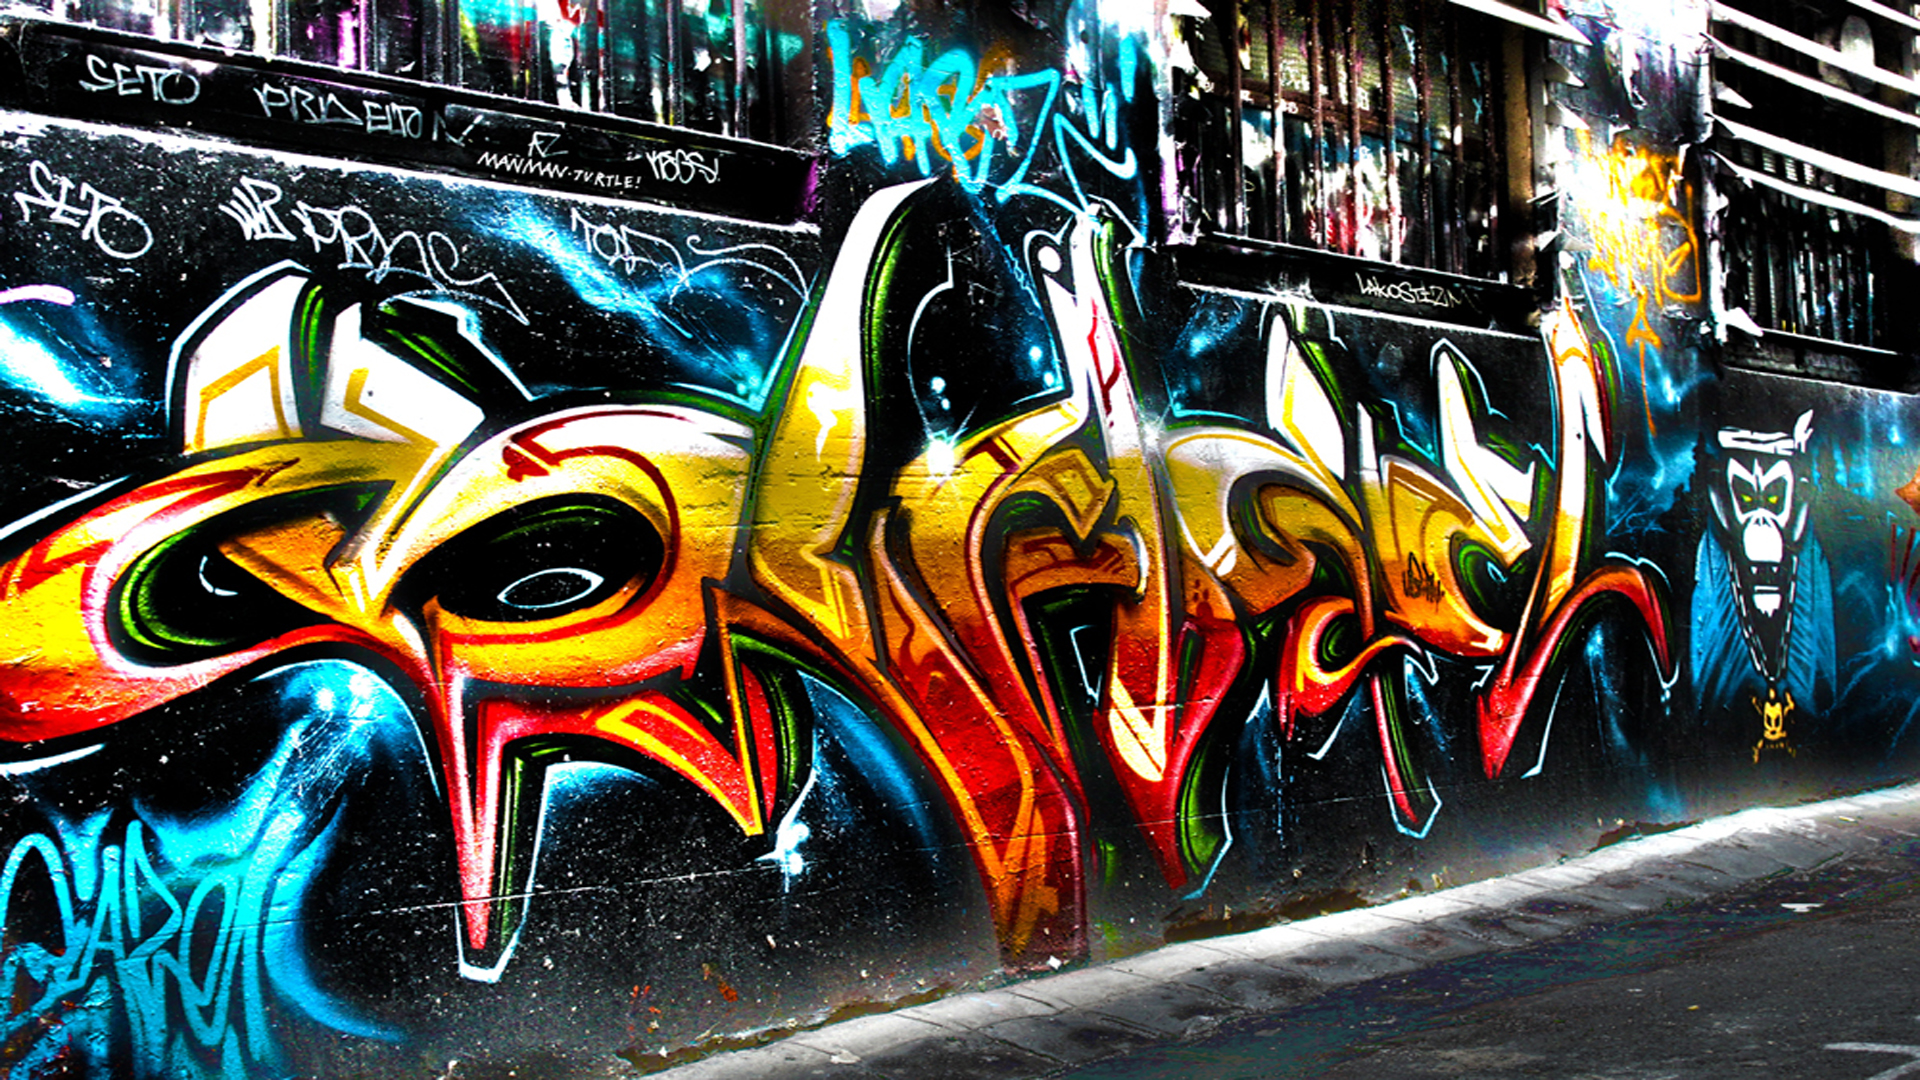 Artistic - Graffiti  - Trippy - Psychedelic - Urban - Urban Art Wallpaper